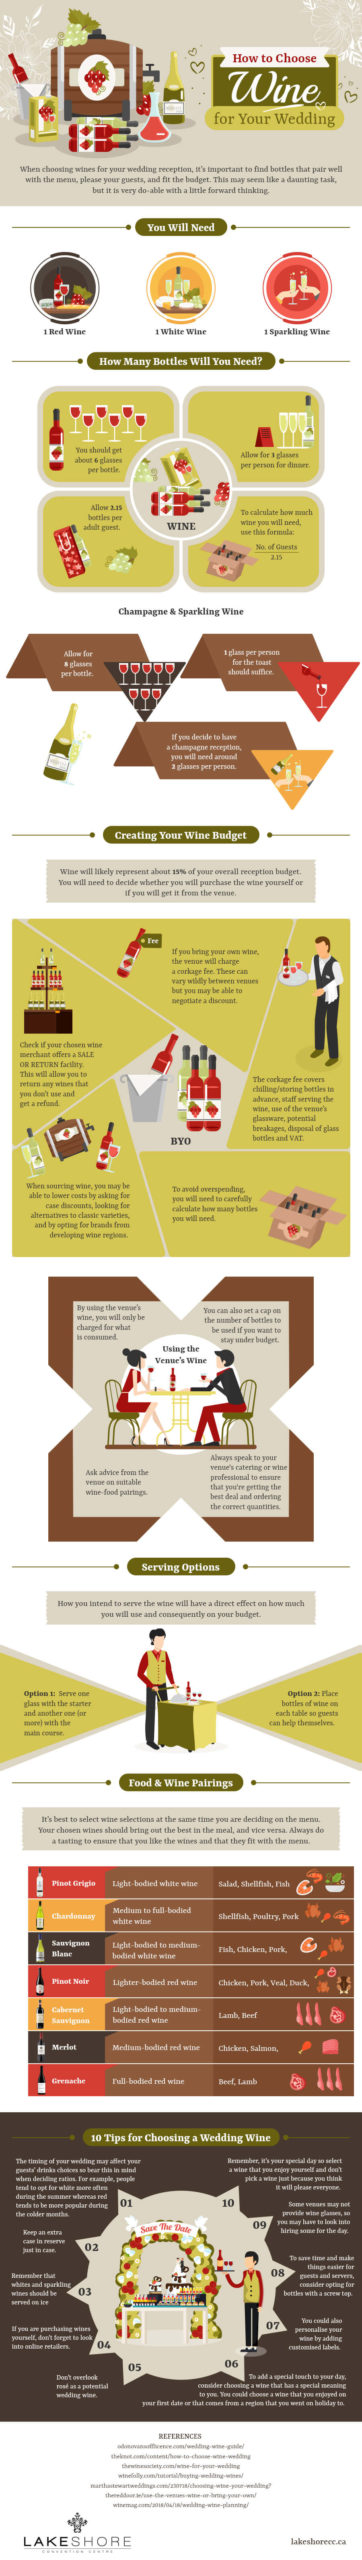 How to Choose Wine for Your Wedding (Infographic)